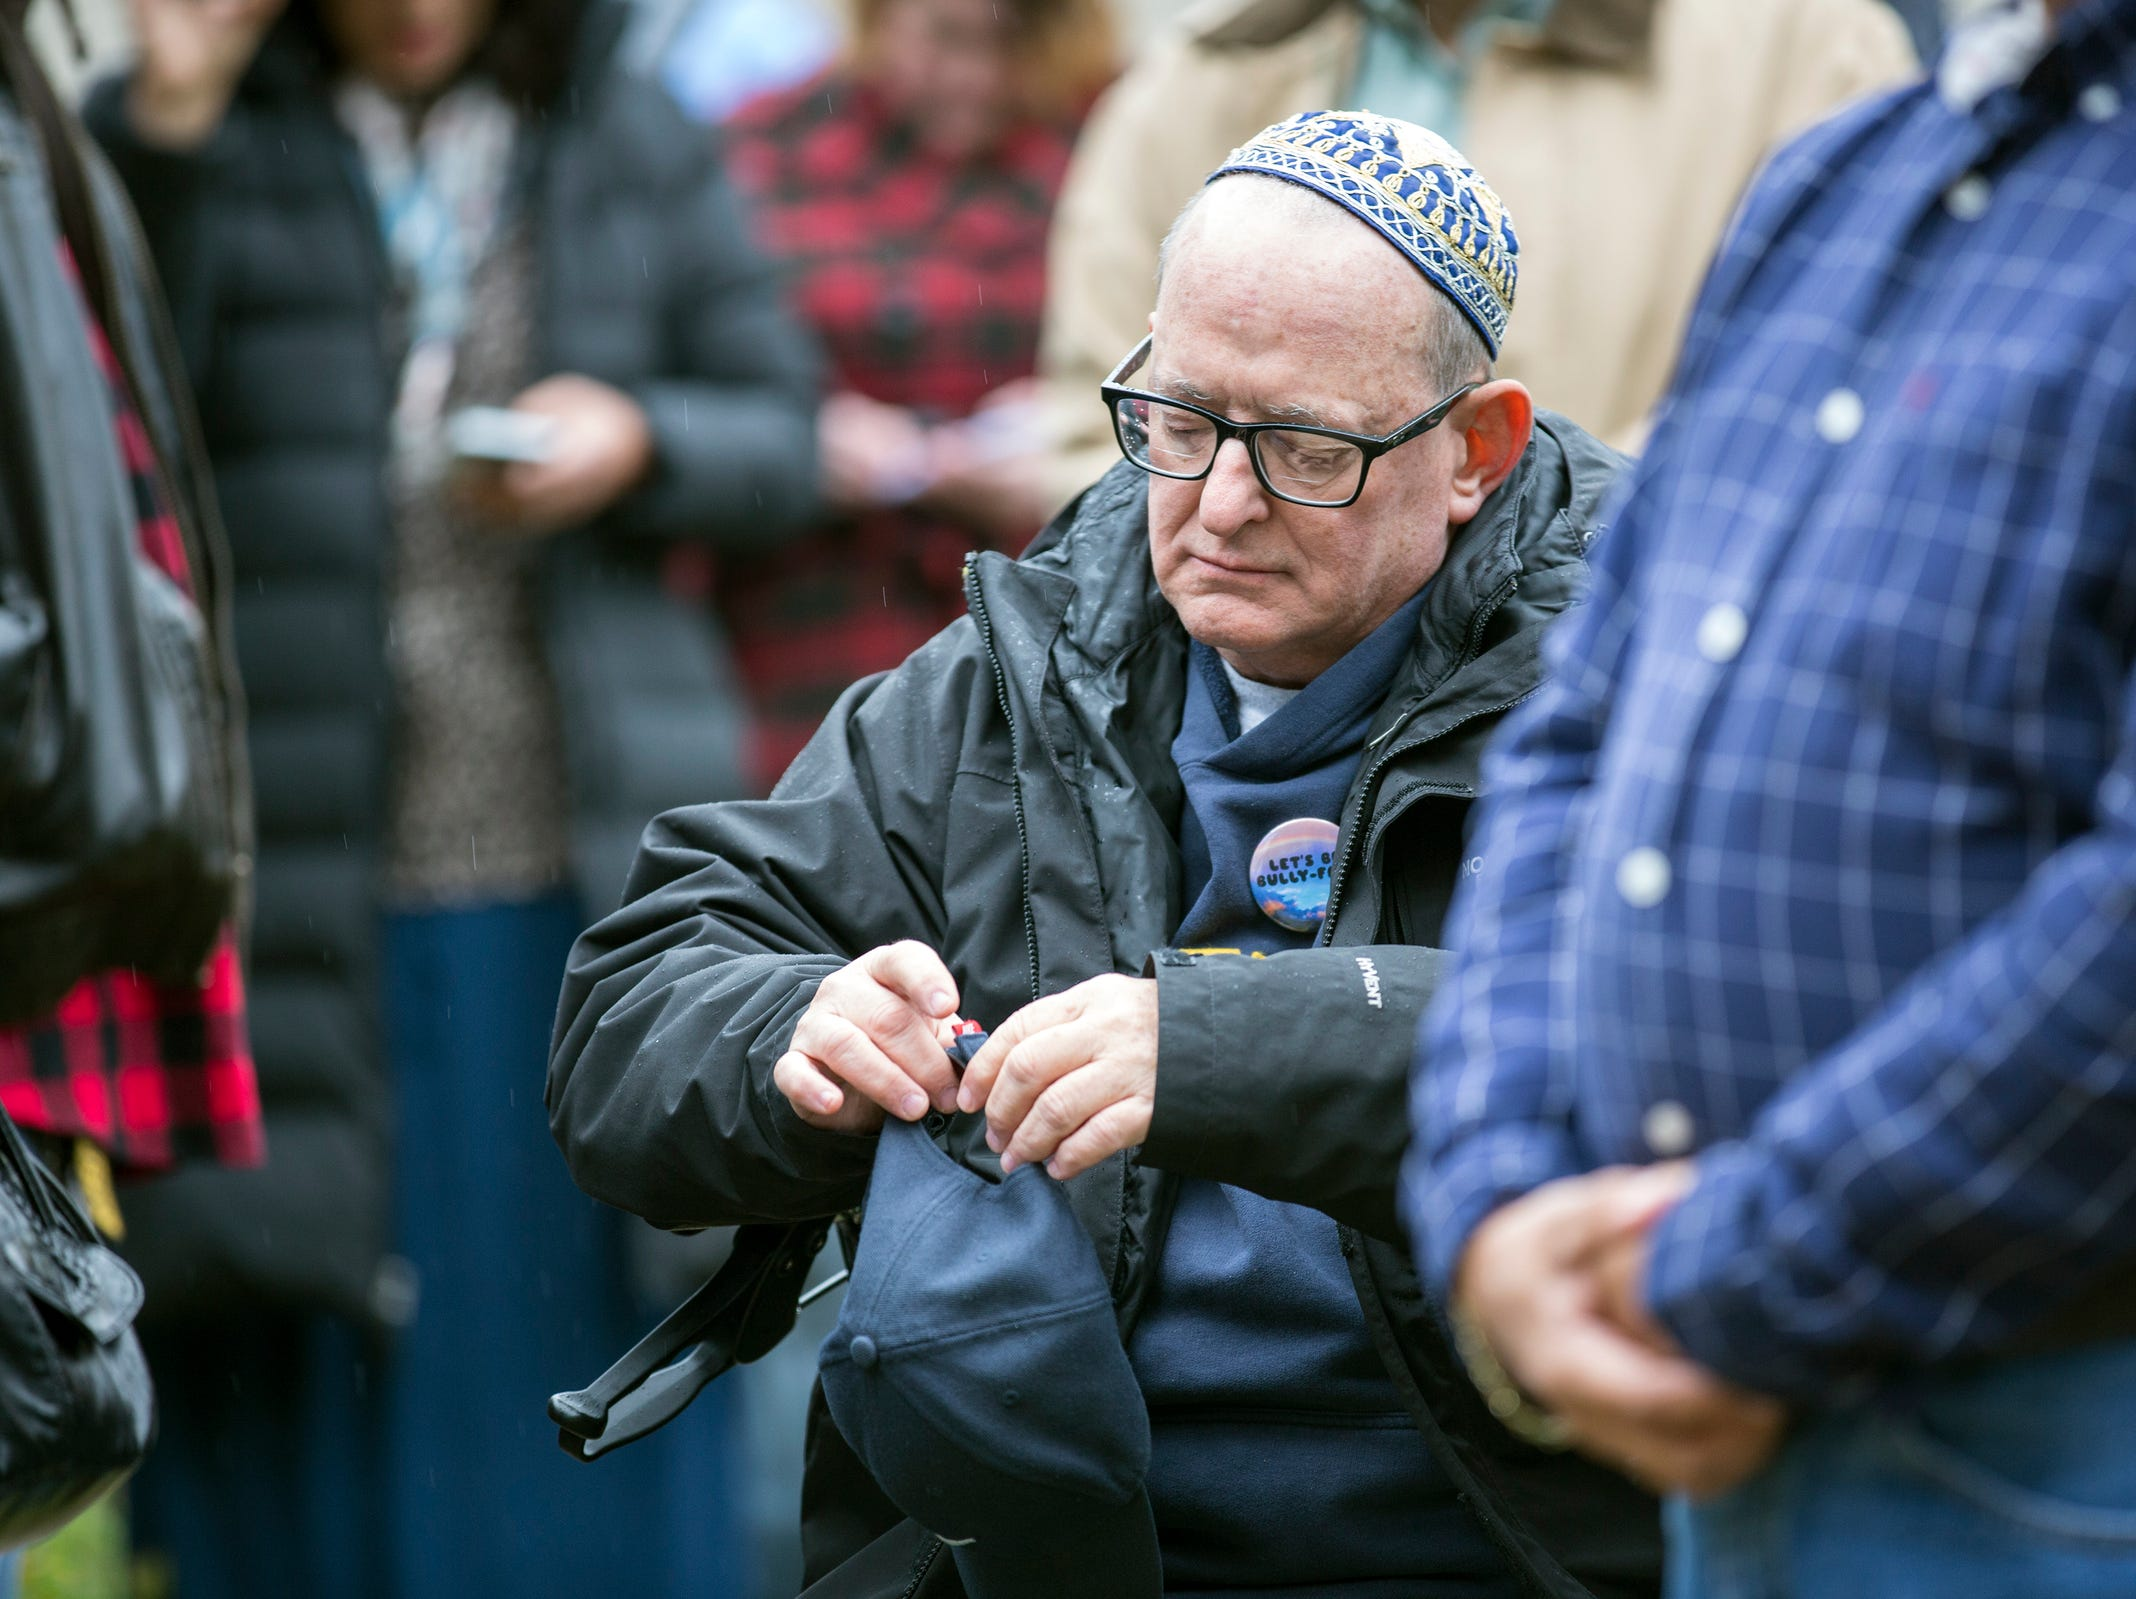 David Crandall of Royal Oak, gathers with others during a vigil, in honor of 11 people who were killed during a mass shooting in Pittsburgh, at Jewish Ferndale in Ferndale, Mich., Sunday, Oct. 28, 2018.